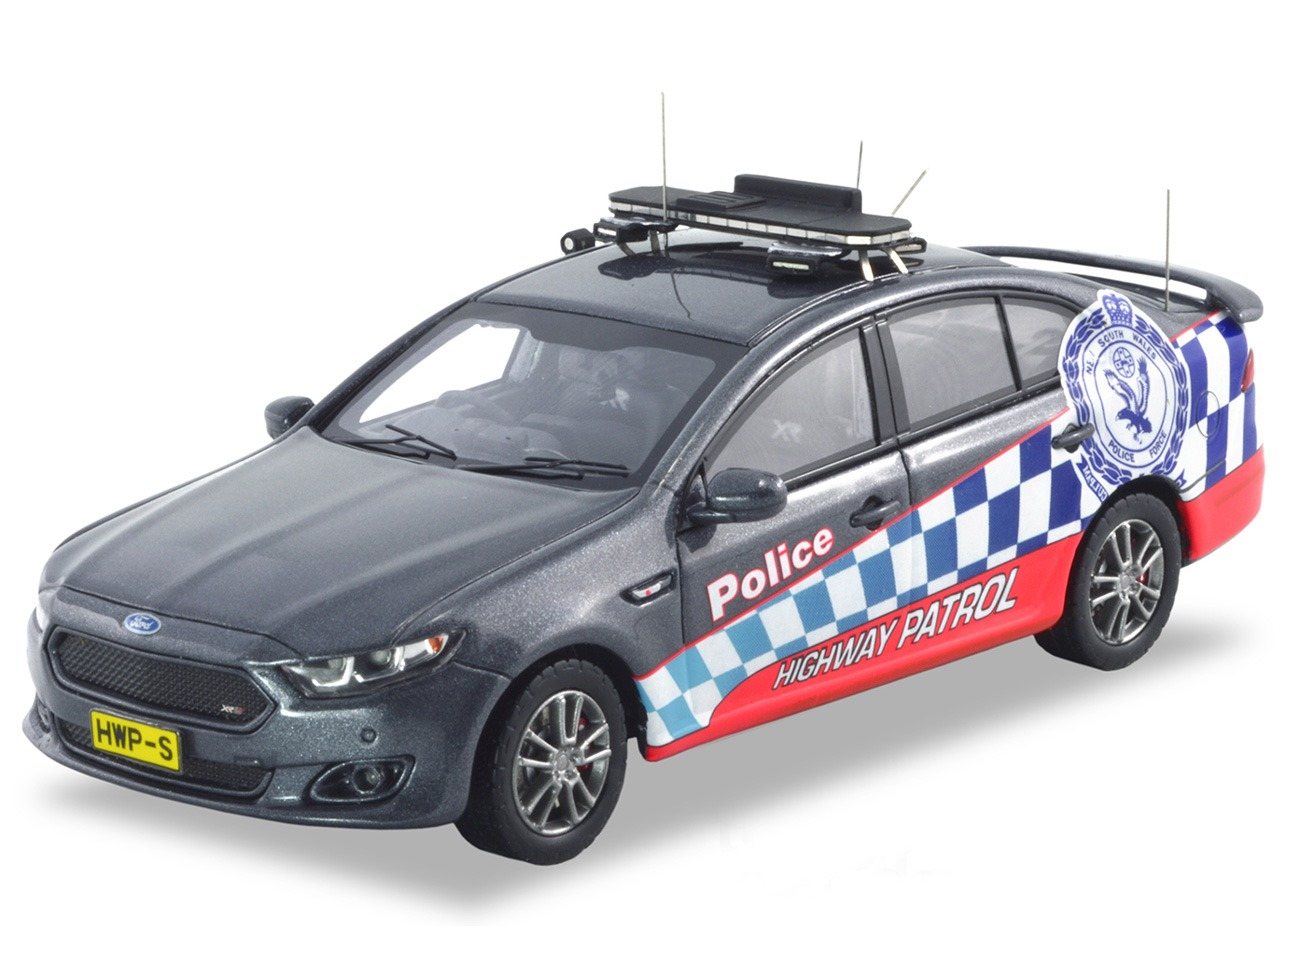 Ford FGX XR6 Turbo Highway Patrol – Grey